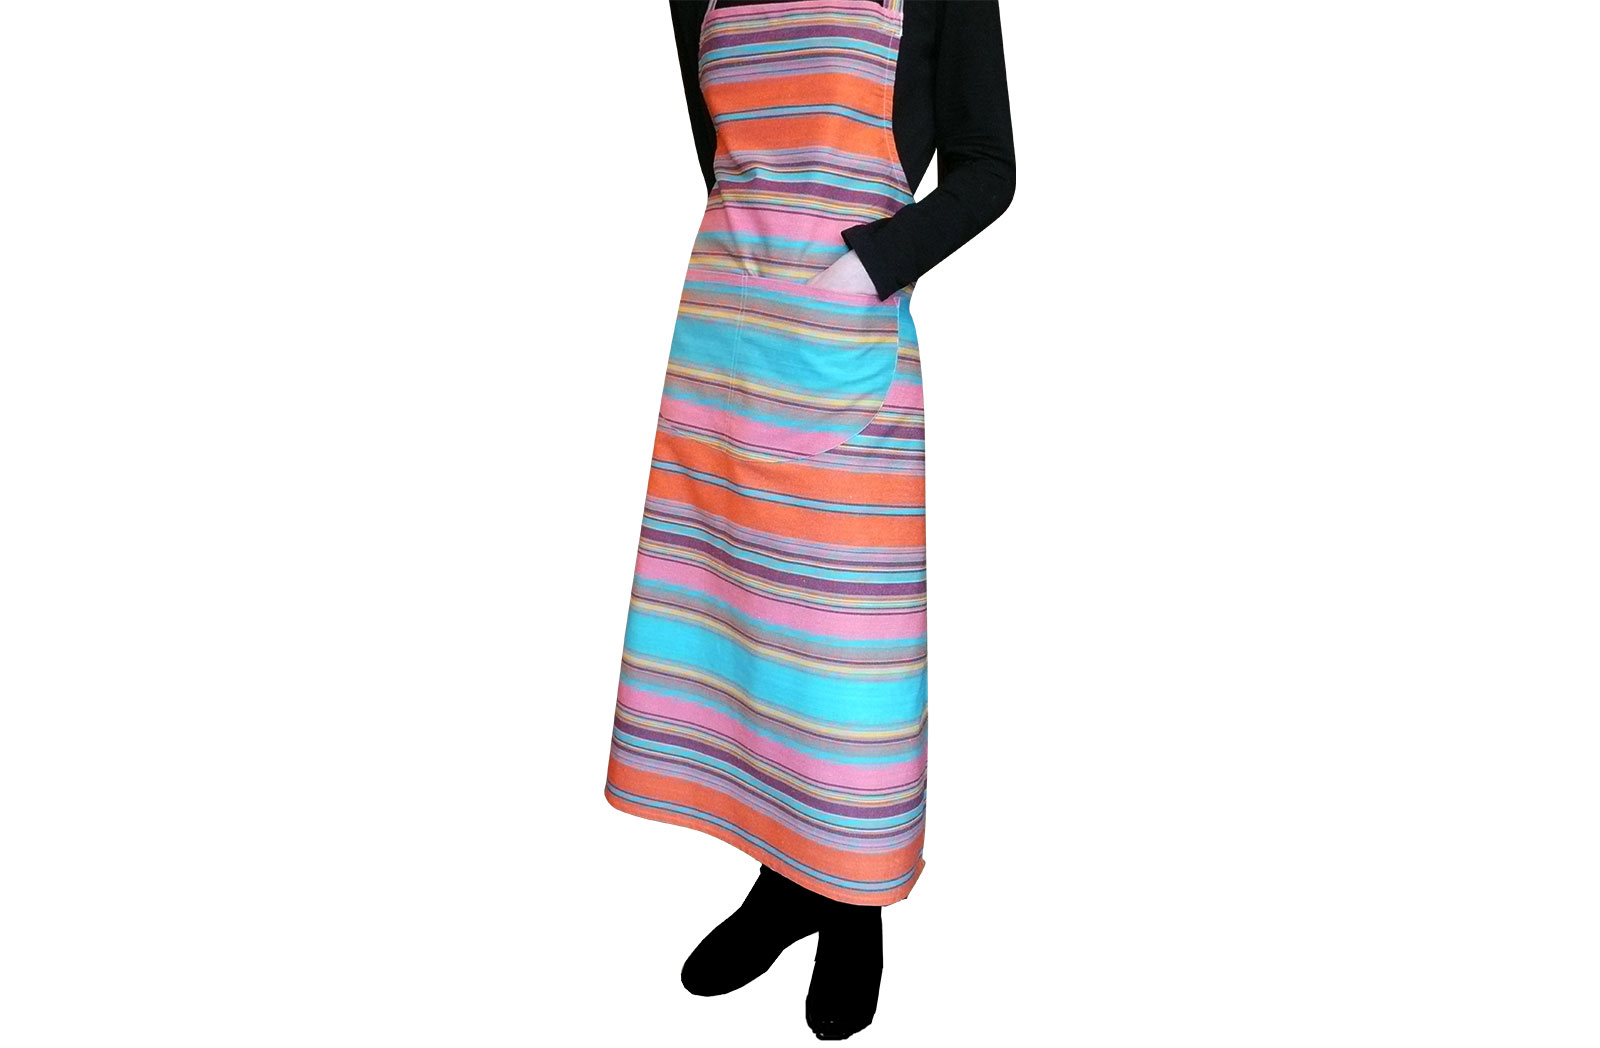 Turquoise Striped Aprons Turquoise  Salmon Pink  Tangerine  Stripes